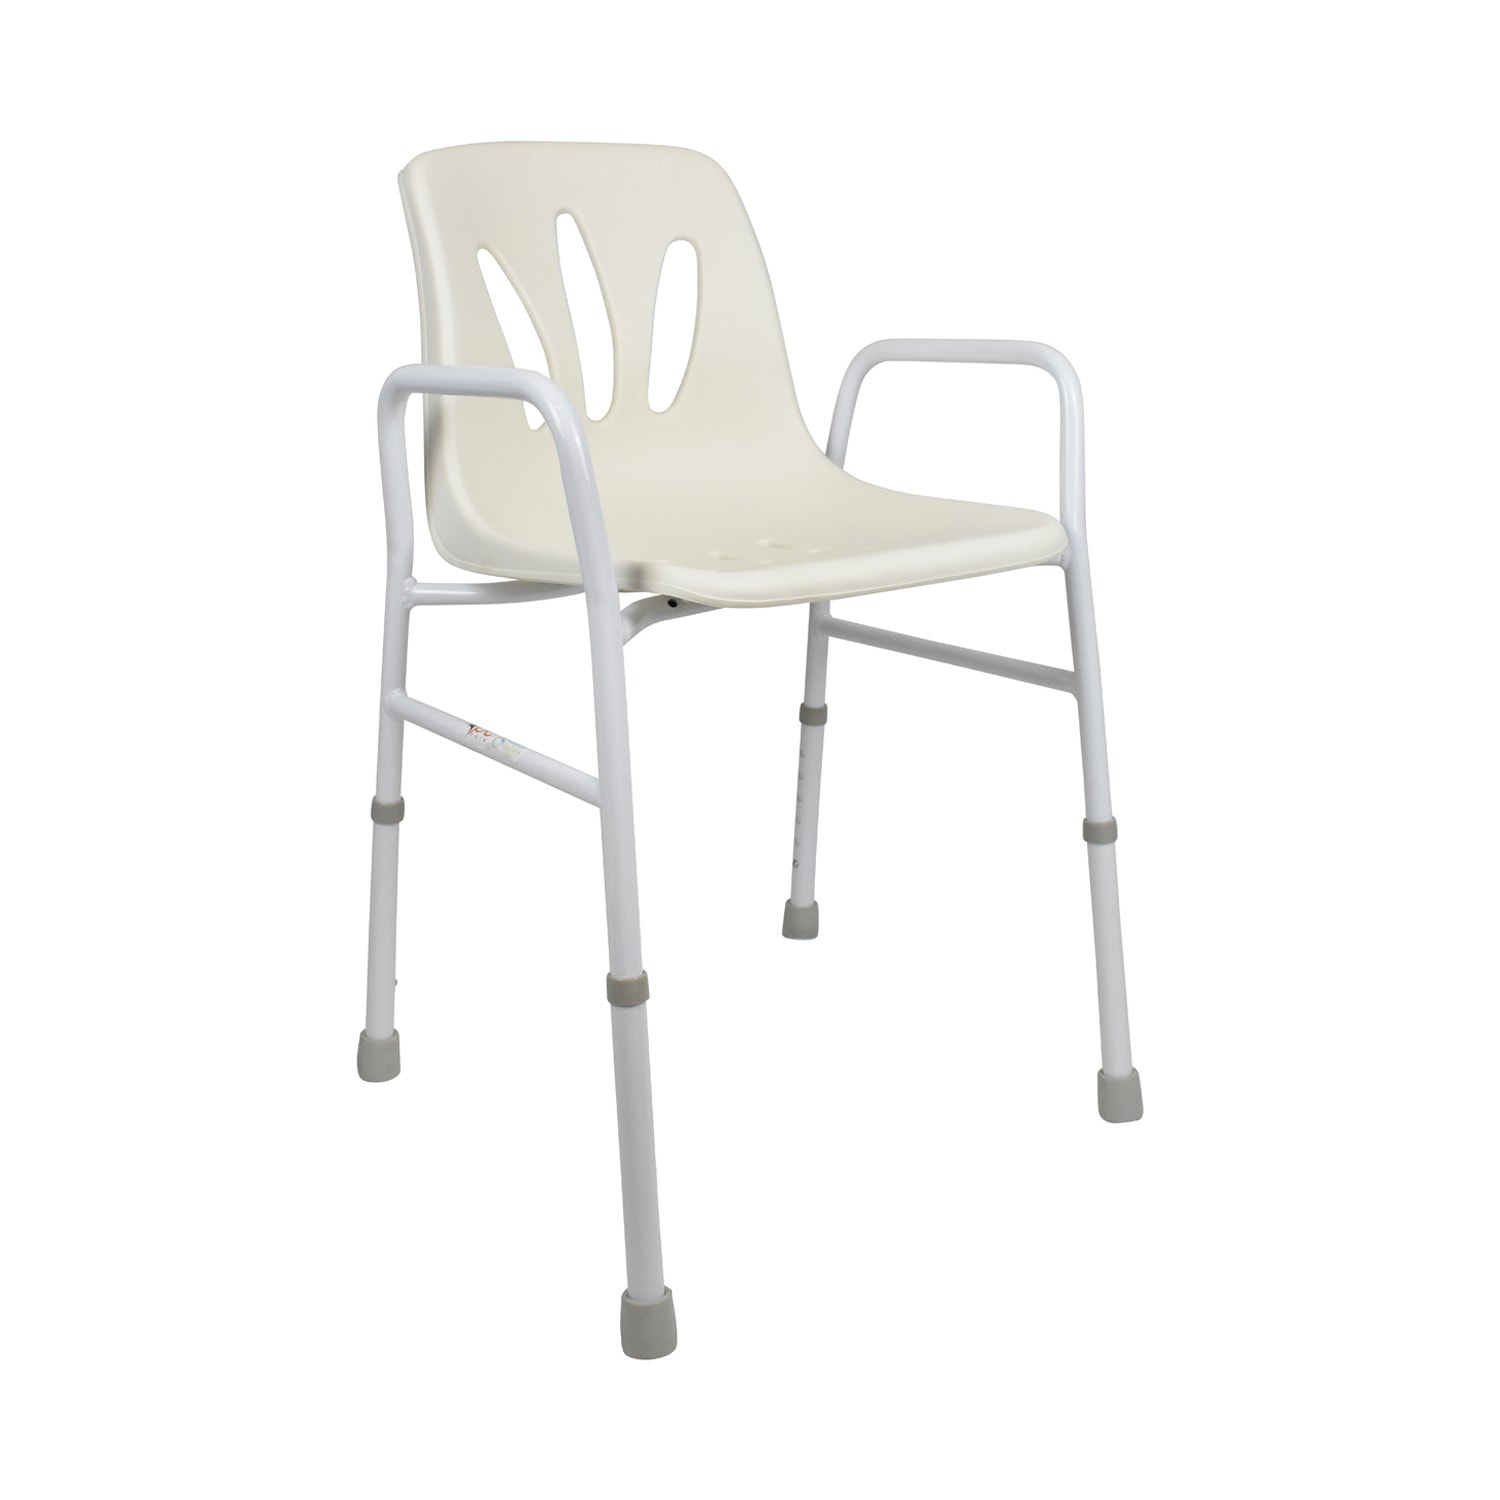 PE Care Shower Chair with Bucket Seat